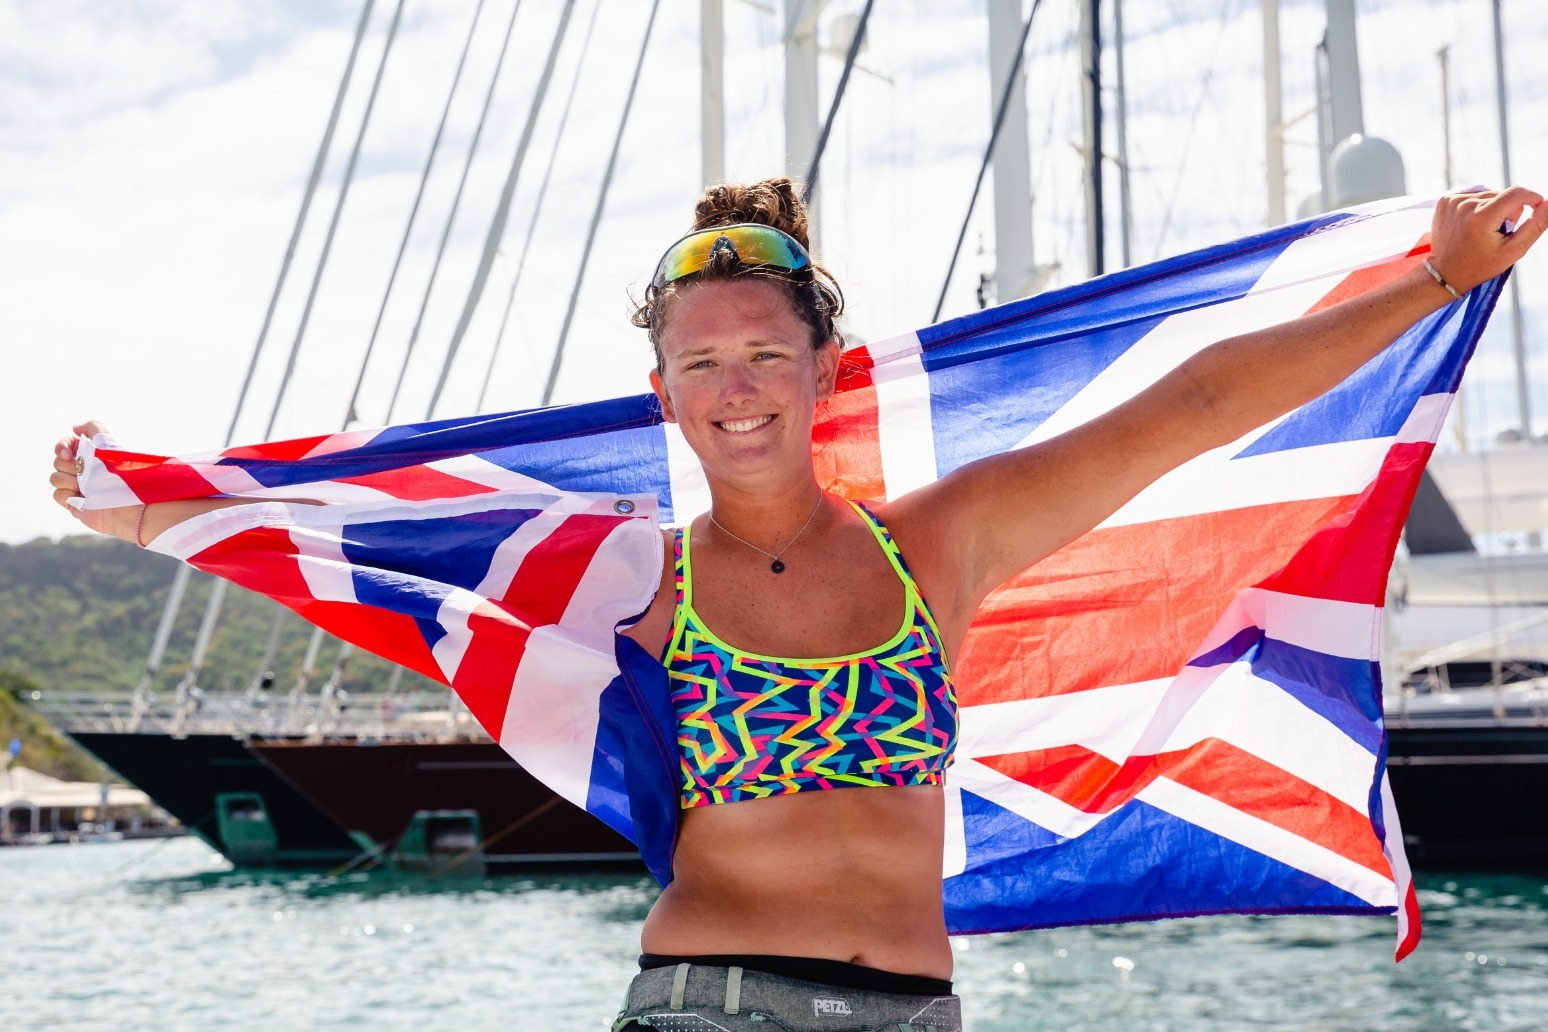 Atlantic row 'best experience of my life', says record-breaking Yorkshirewoman